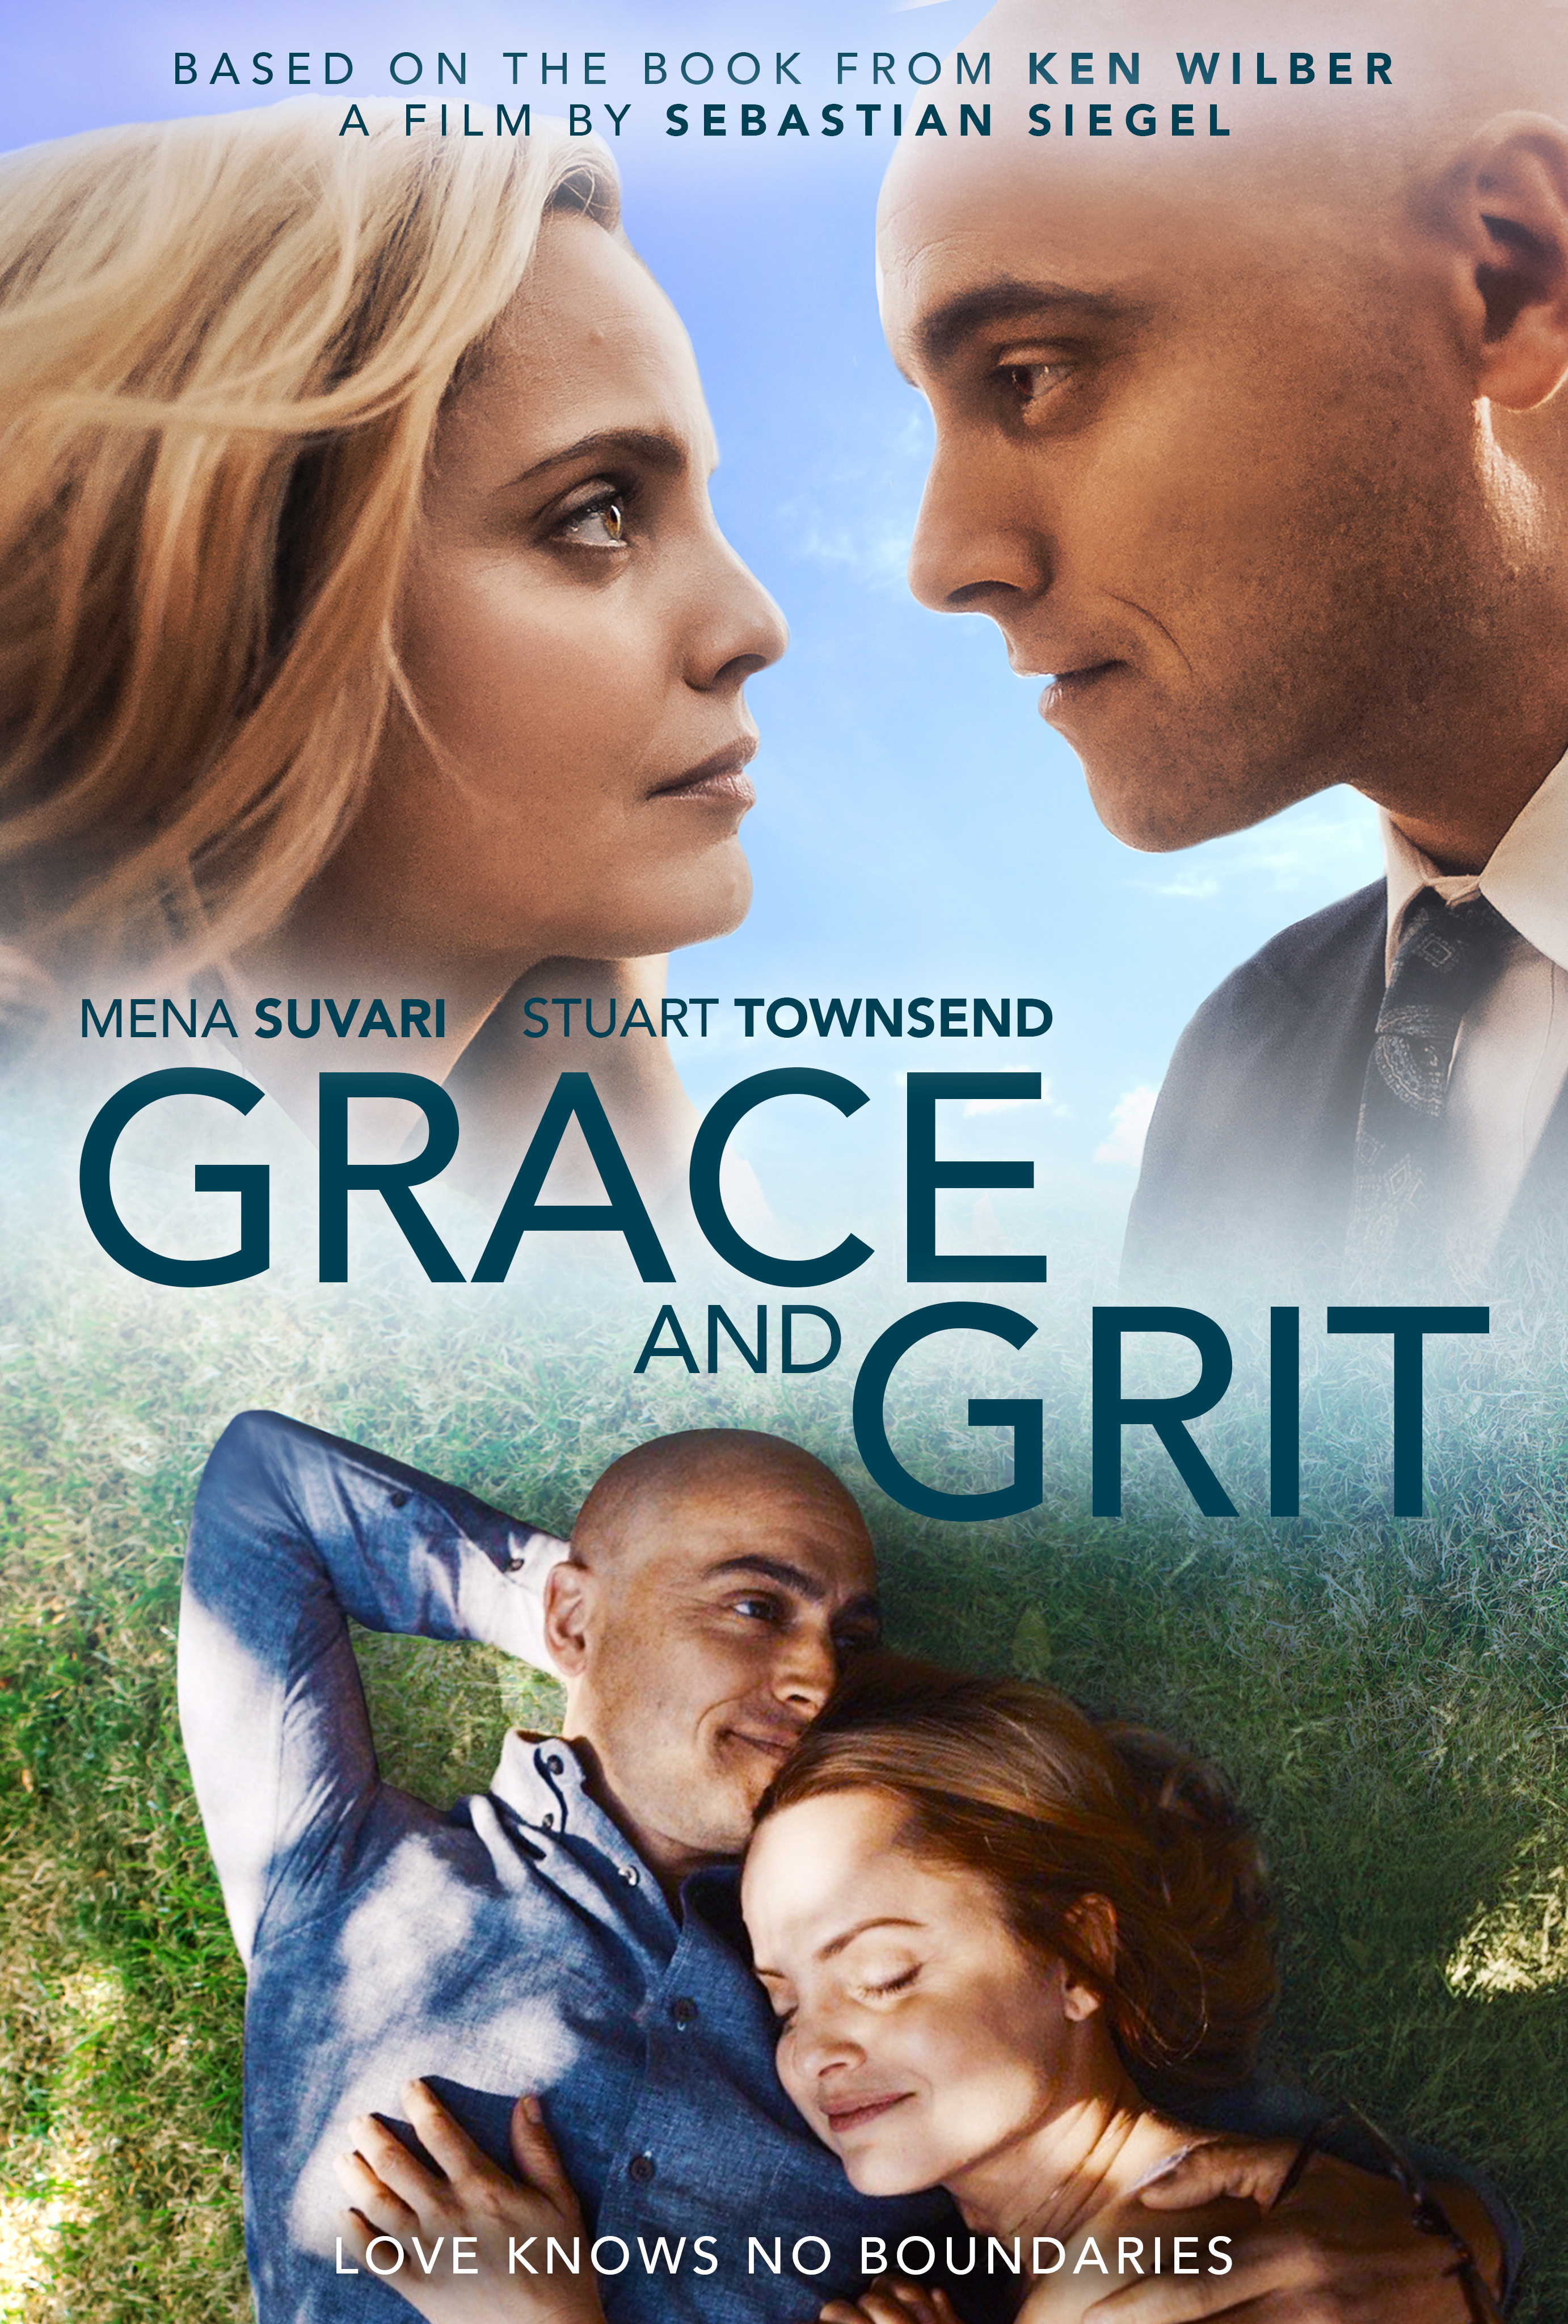 Grace and Grit hd on soap2day